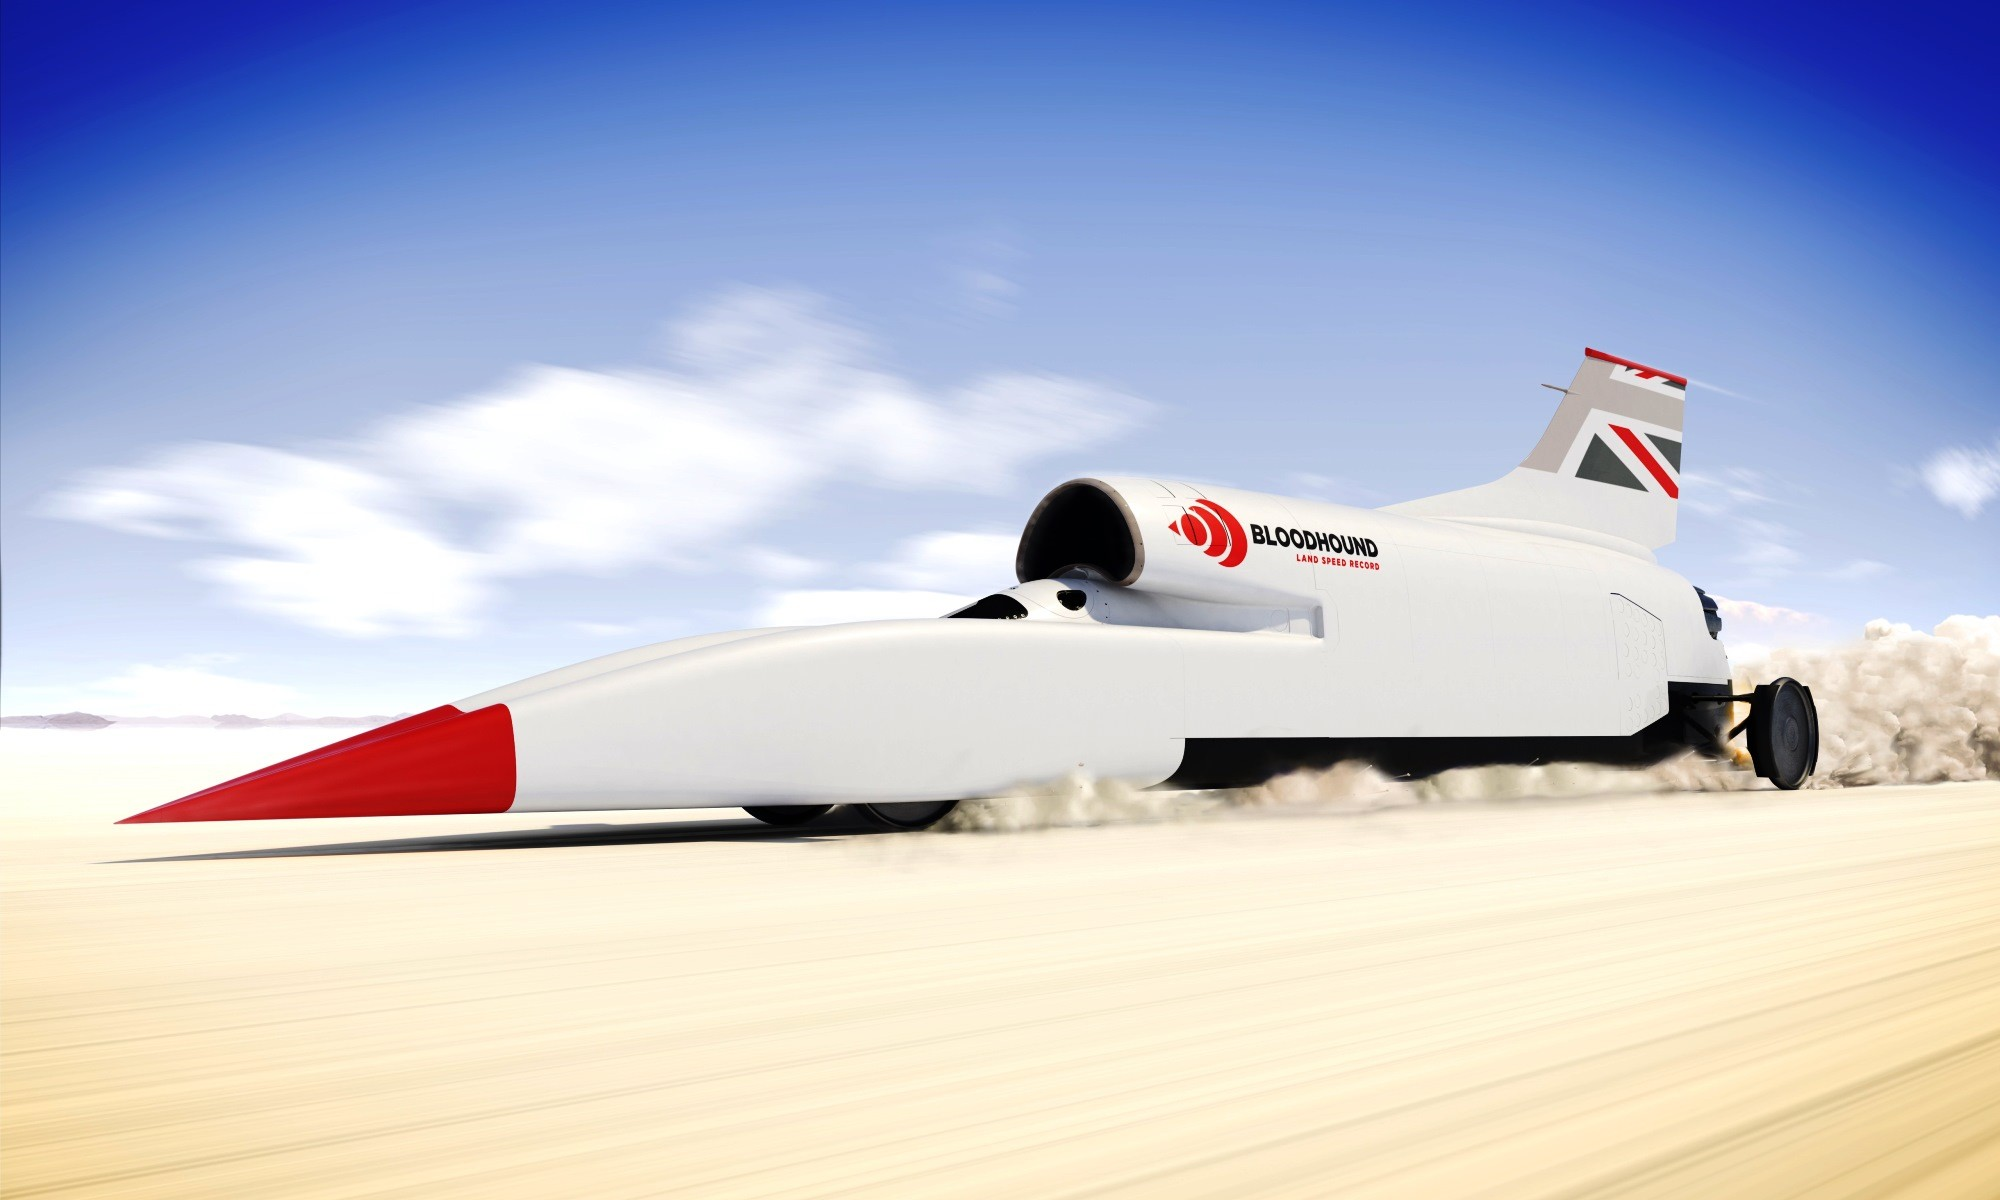 Bloodhound LSR in SA poster